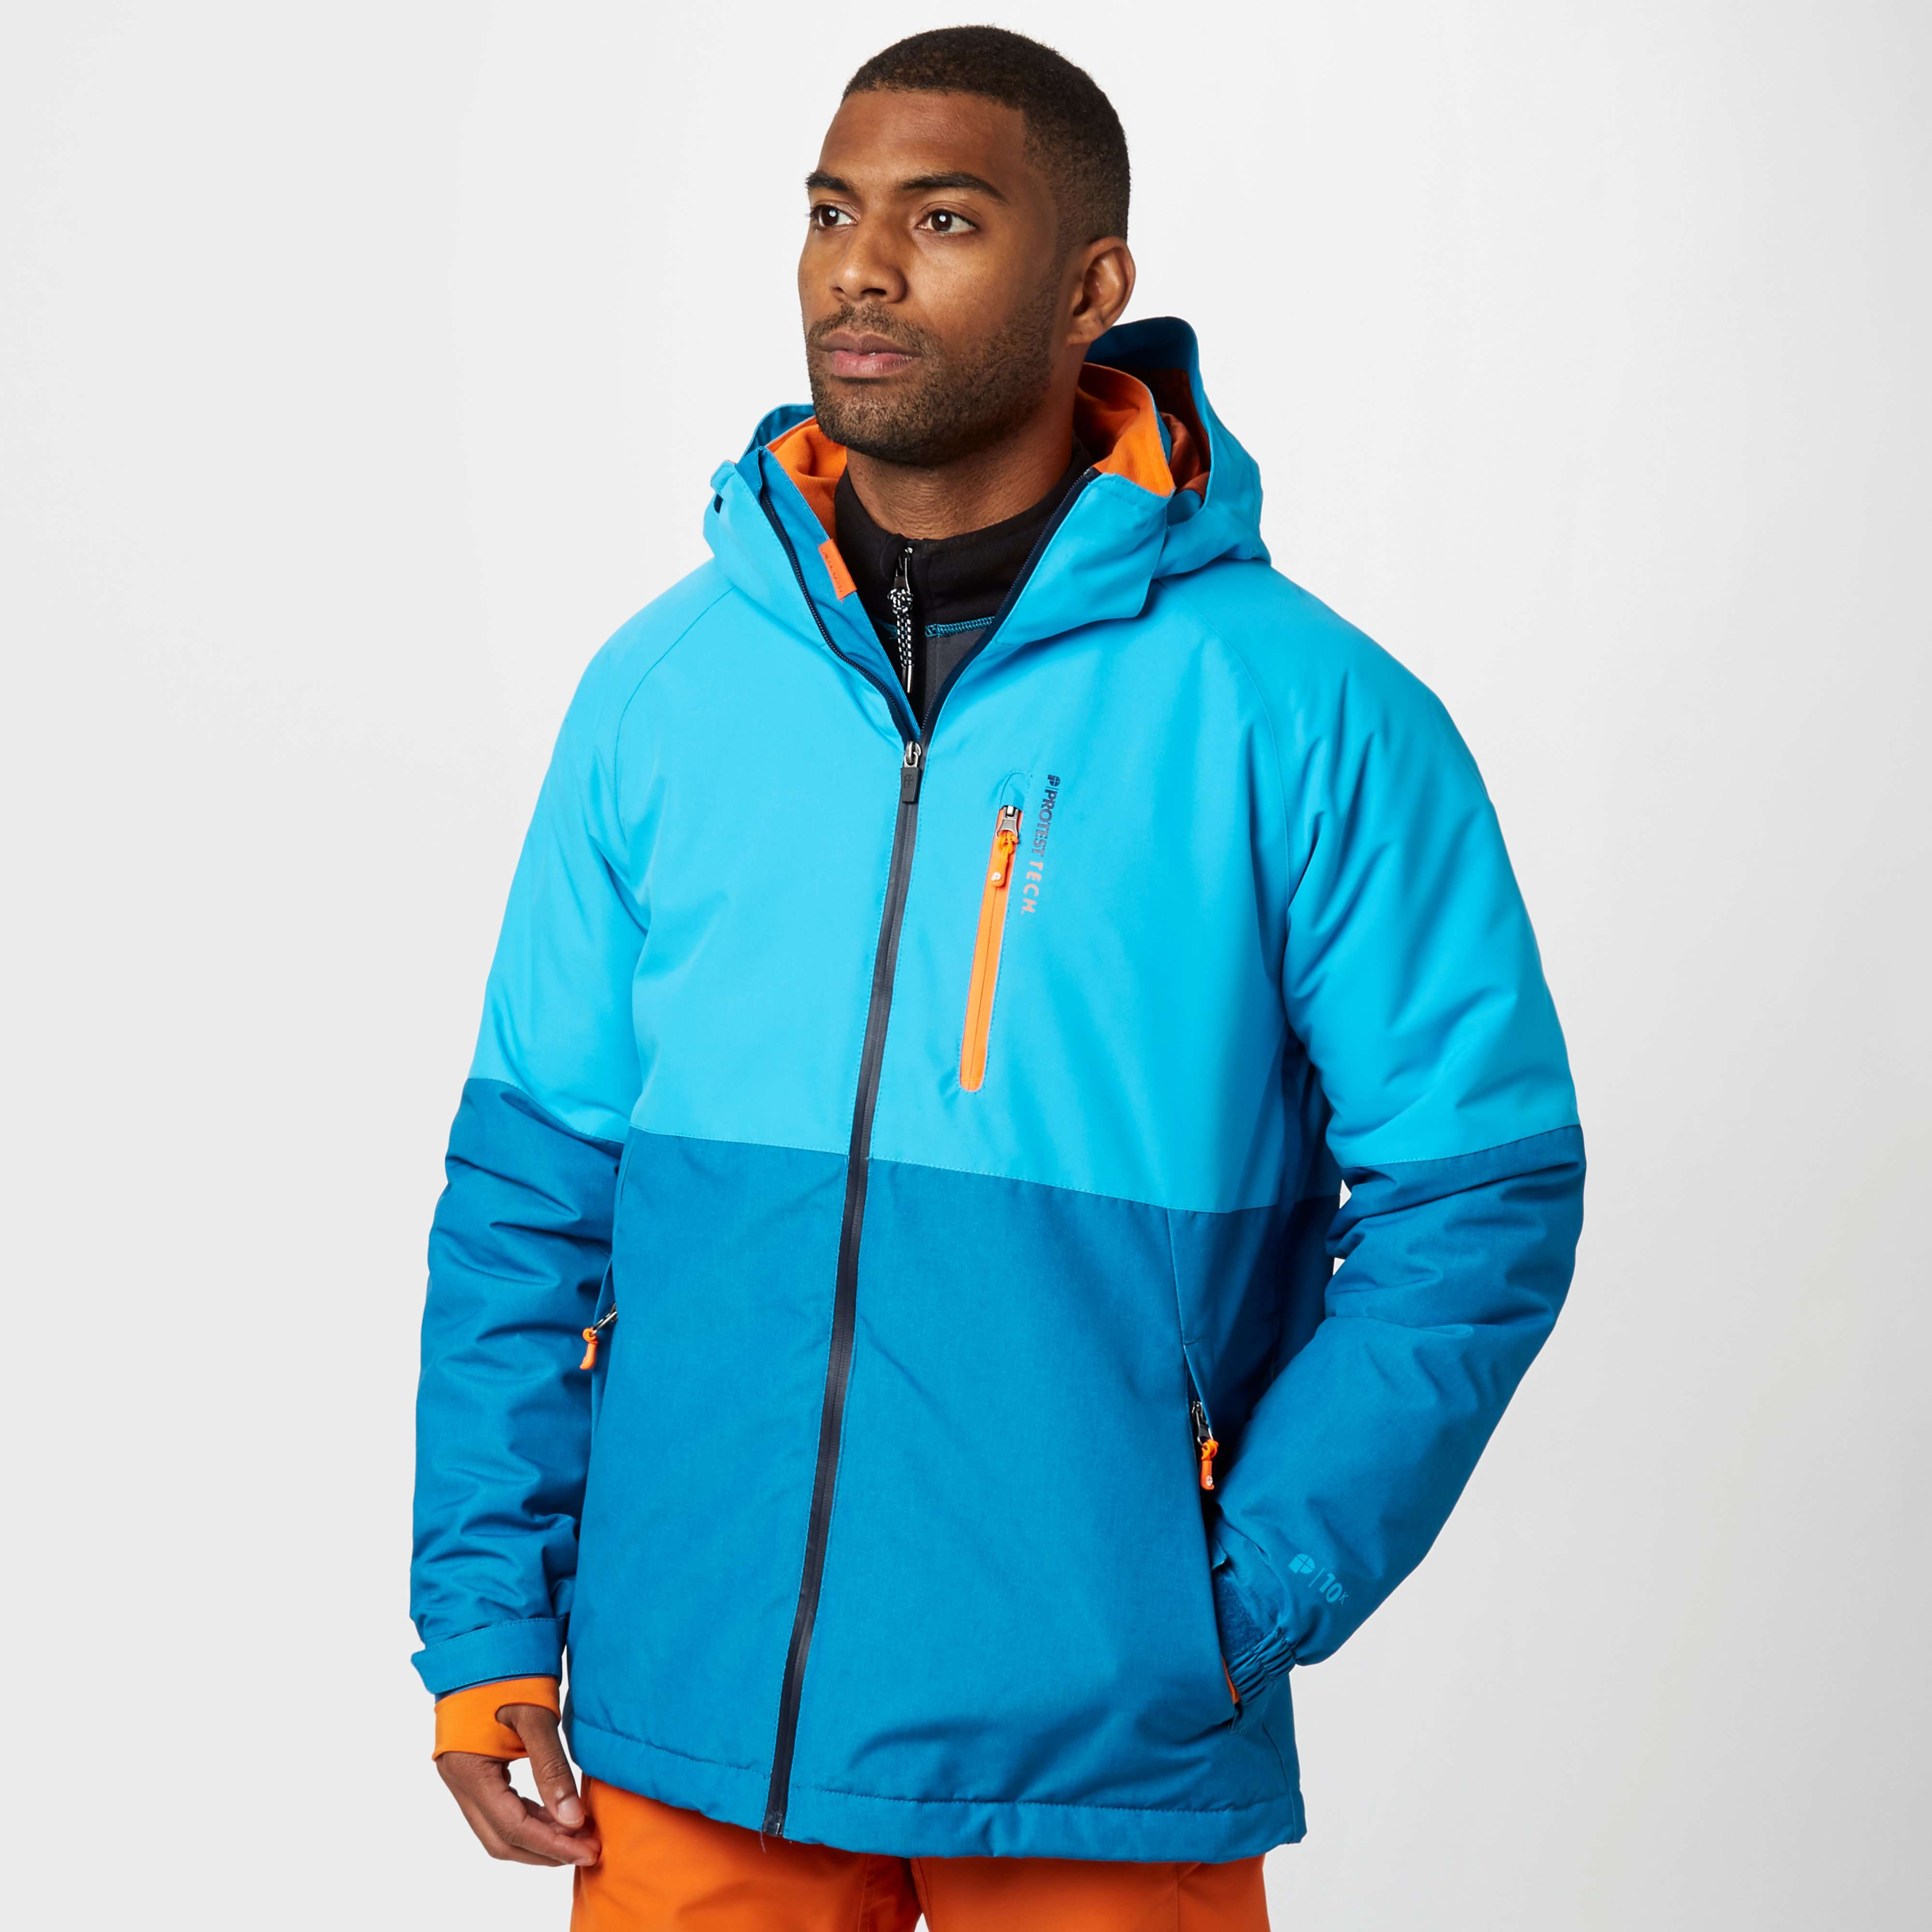 PROTEST Men's Blizzard Ski Jacket